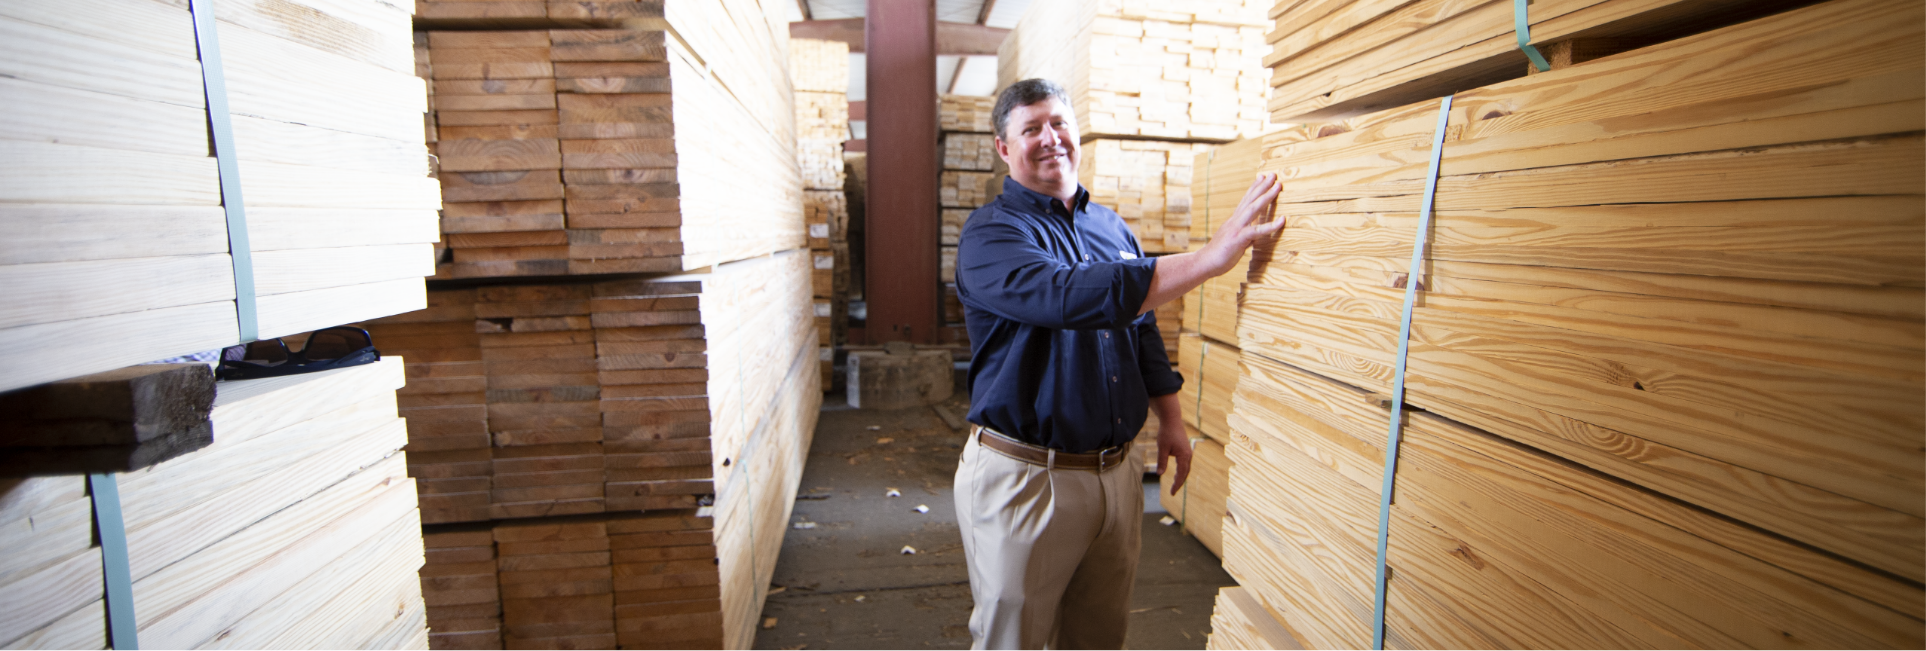 Fortress employee in warehouse with several stacks of wooden planks